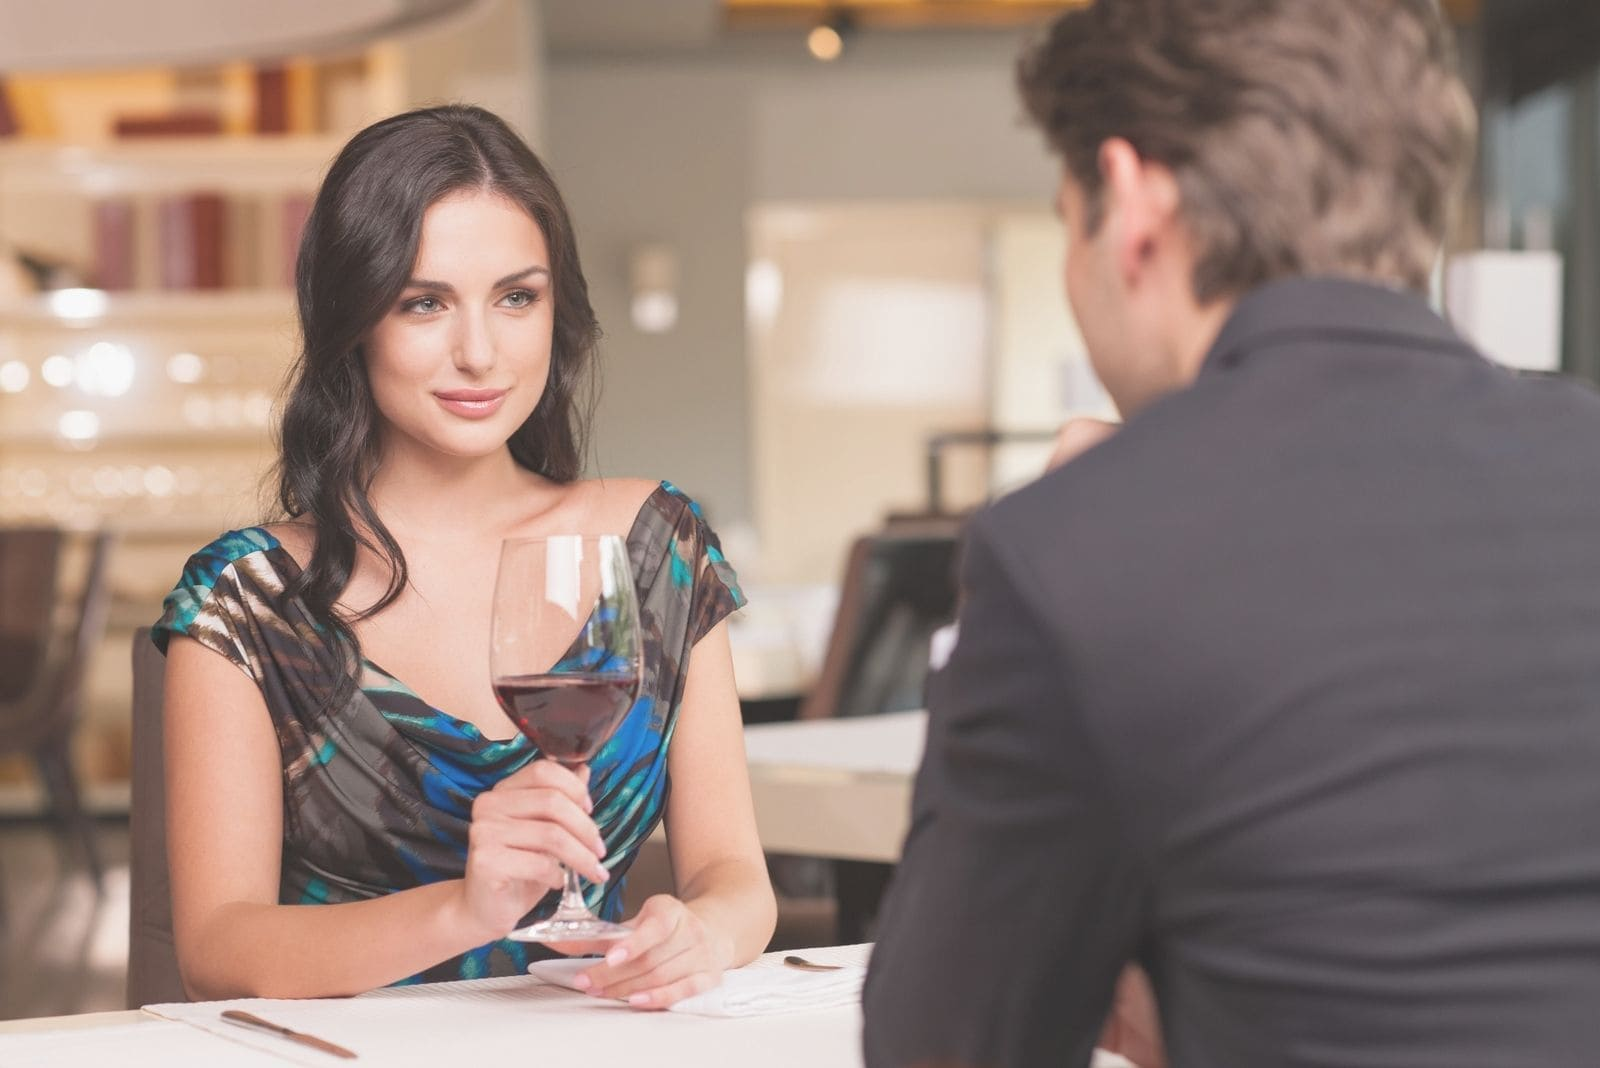 seducing beautiful woman looking at her boyfriend during a dinner date in a restaurant